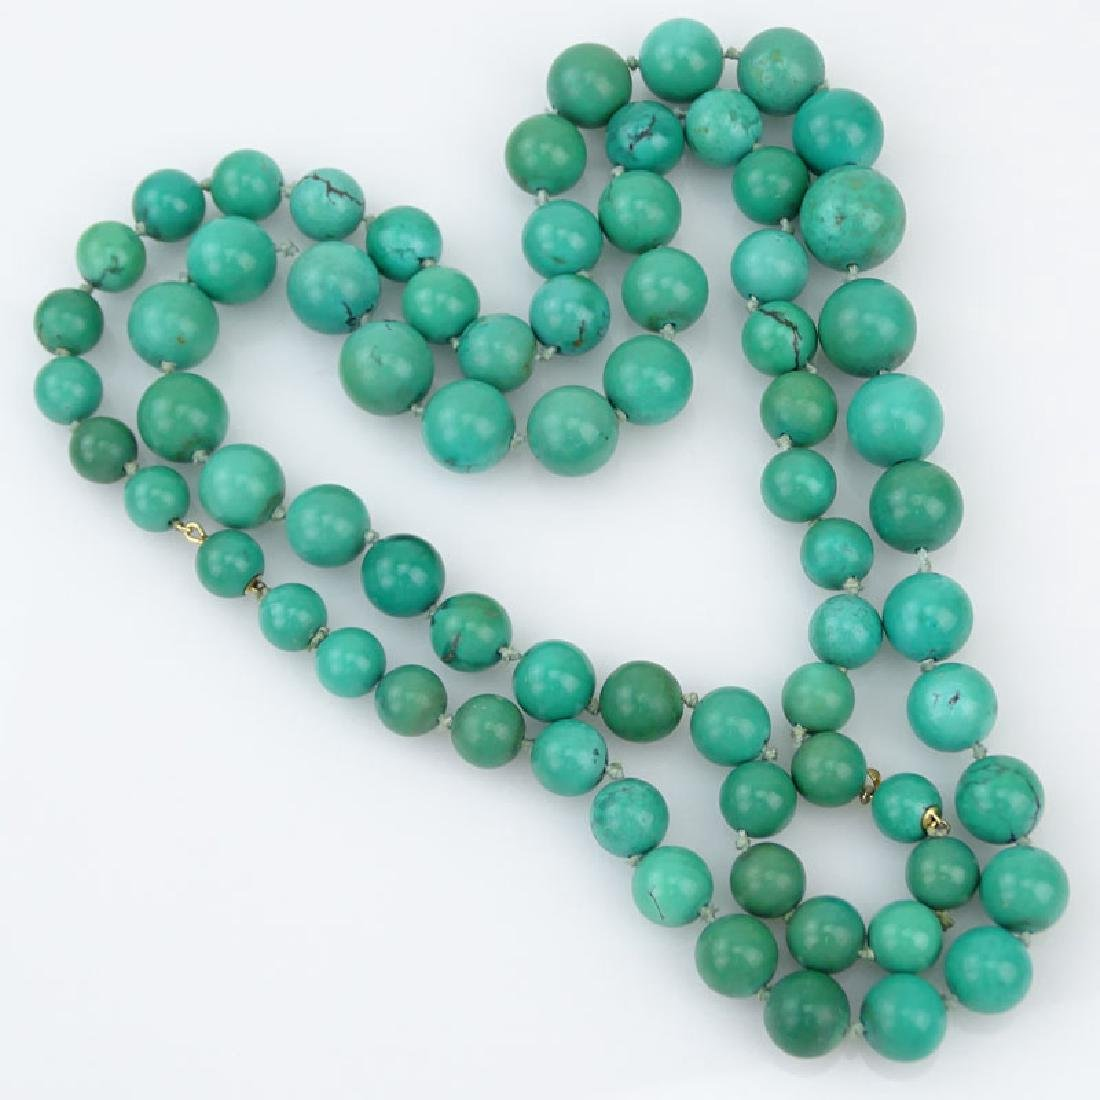 Two (2) Vintage Graduated Turquoise Bead Necklace with